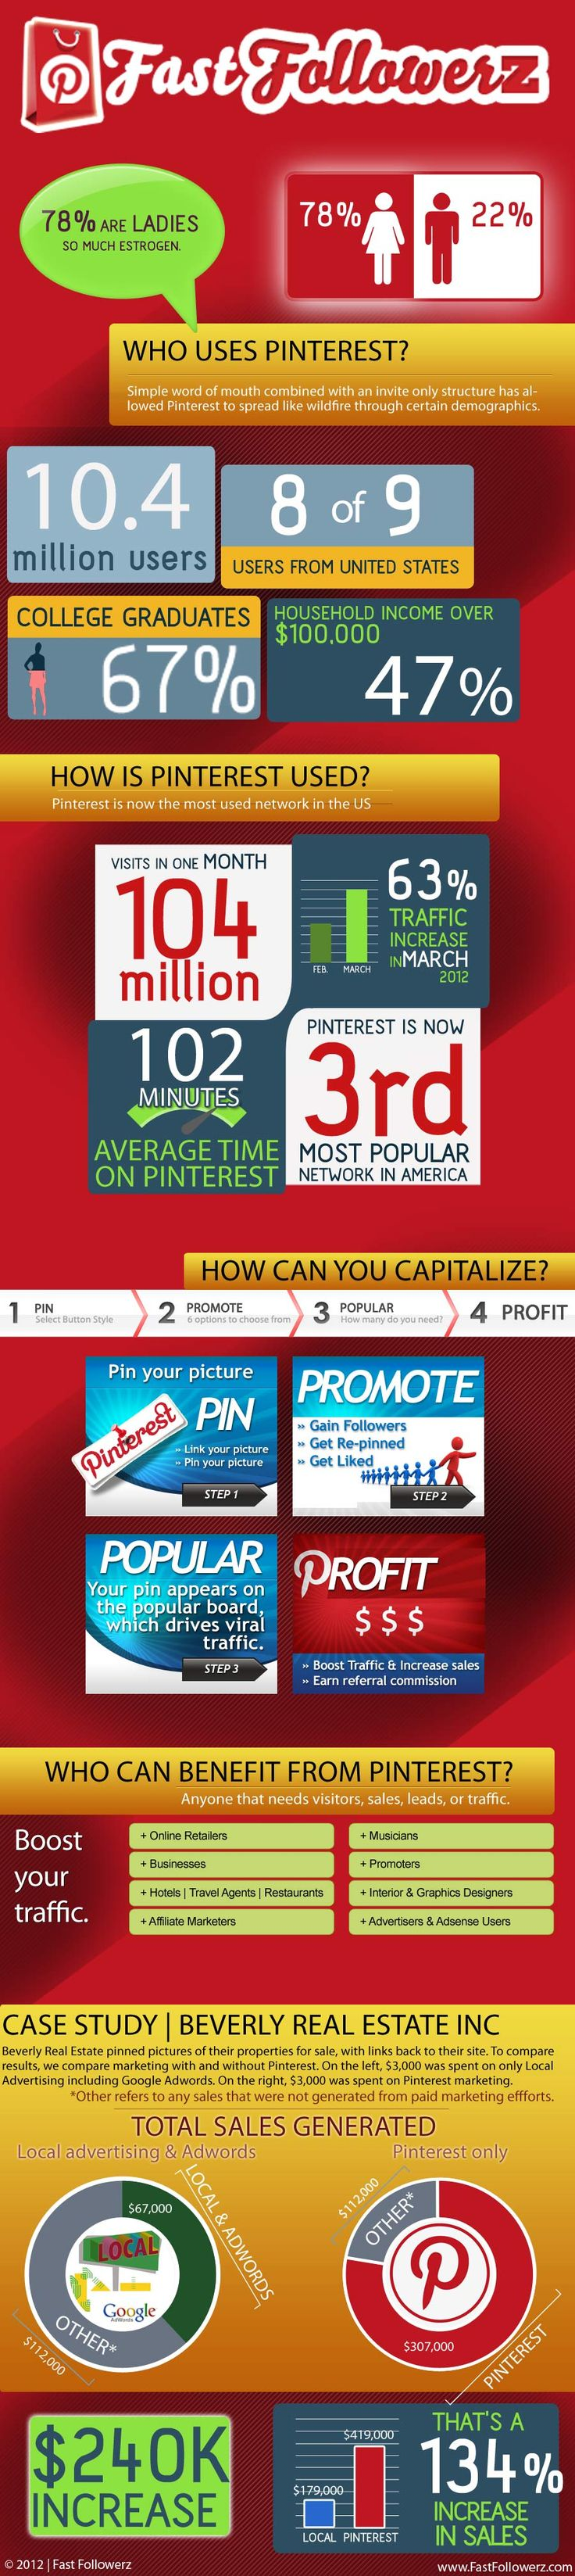 Fast Followers on Pinterest...    Visit us:   Source: www.createasocialbuzz.com/the-buzz-about-us/www.buypinterestfollowers.us/about/how-it-works/